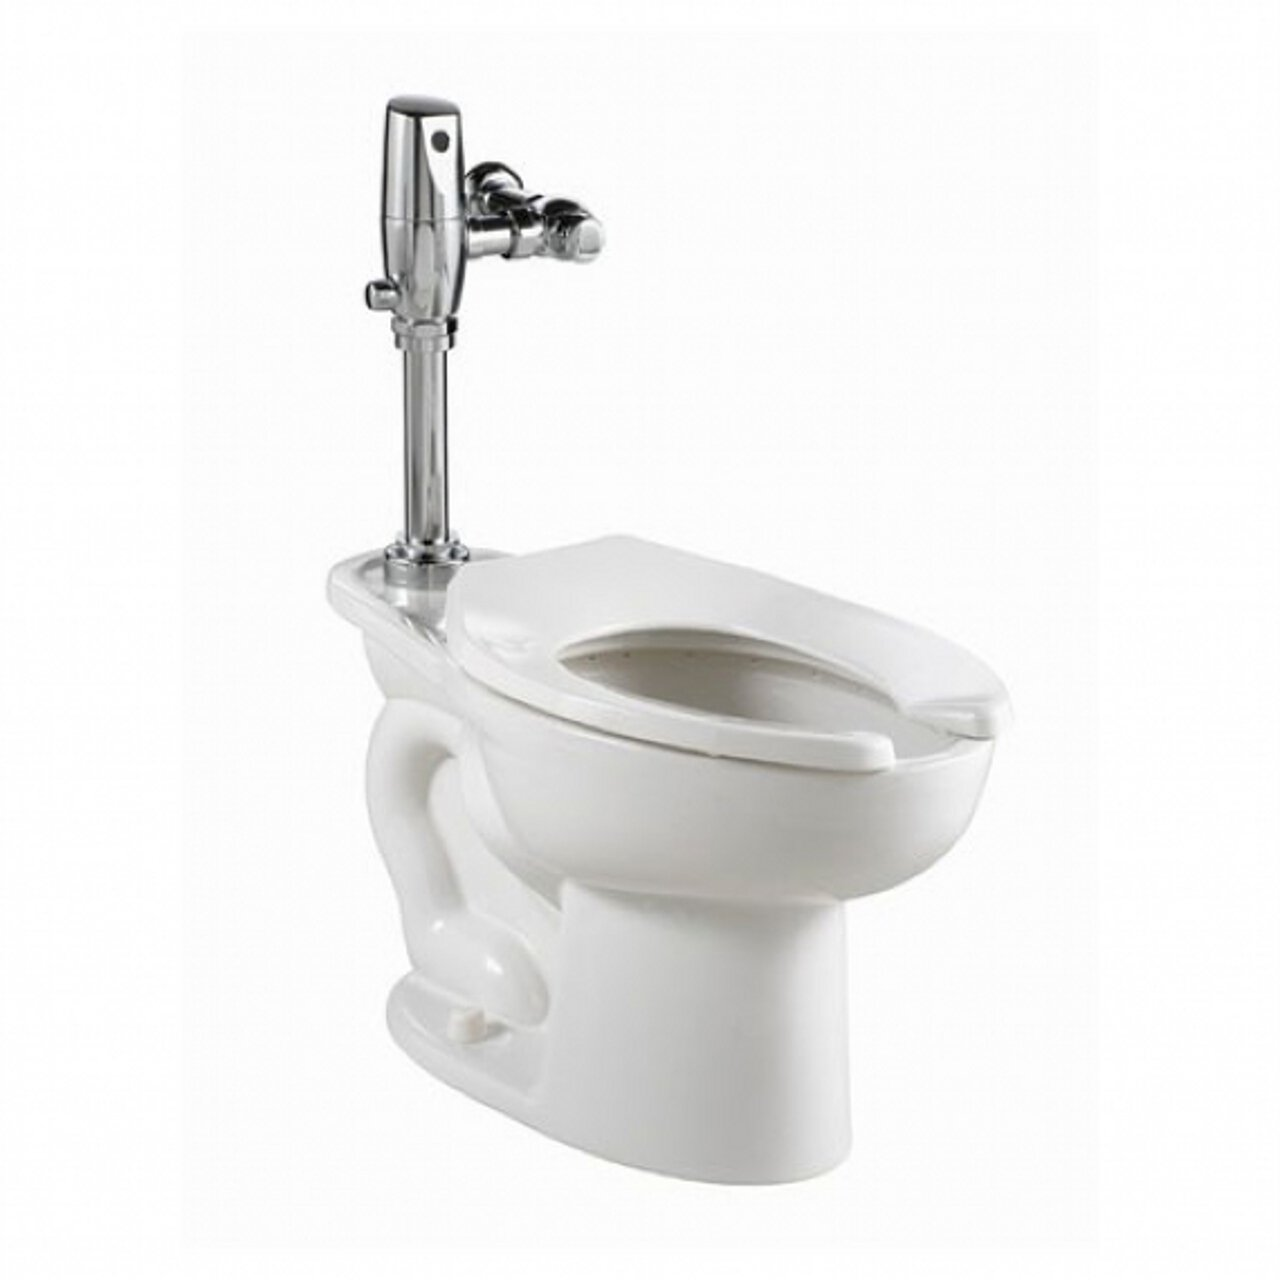 American Standard 3043.660.020 Madera ADA 1.6 GPF Toilet with Selectronic Flush Valve, White